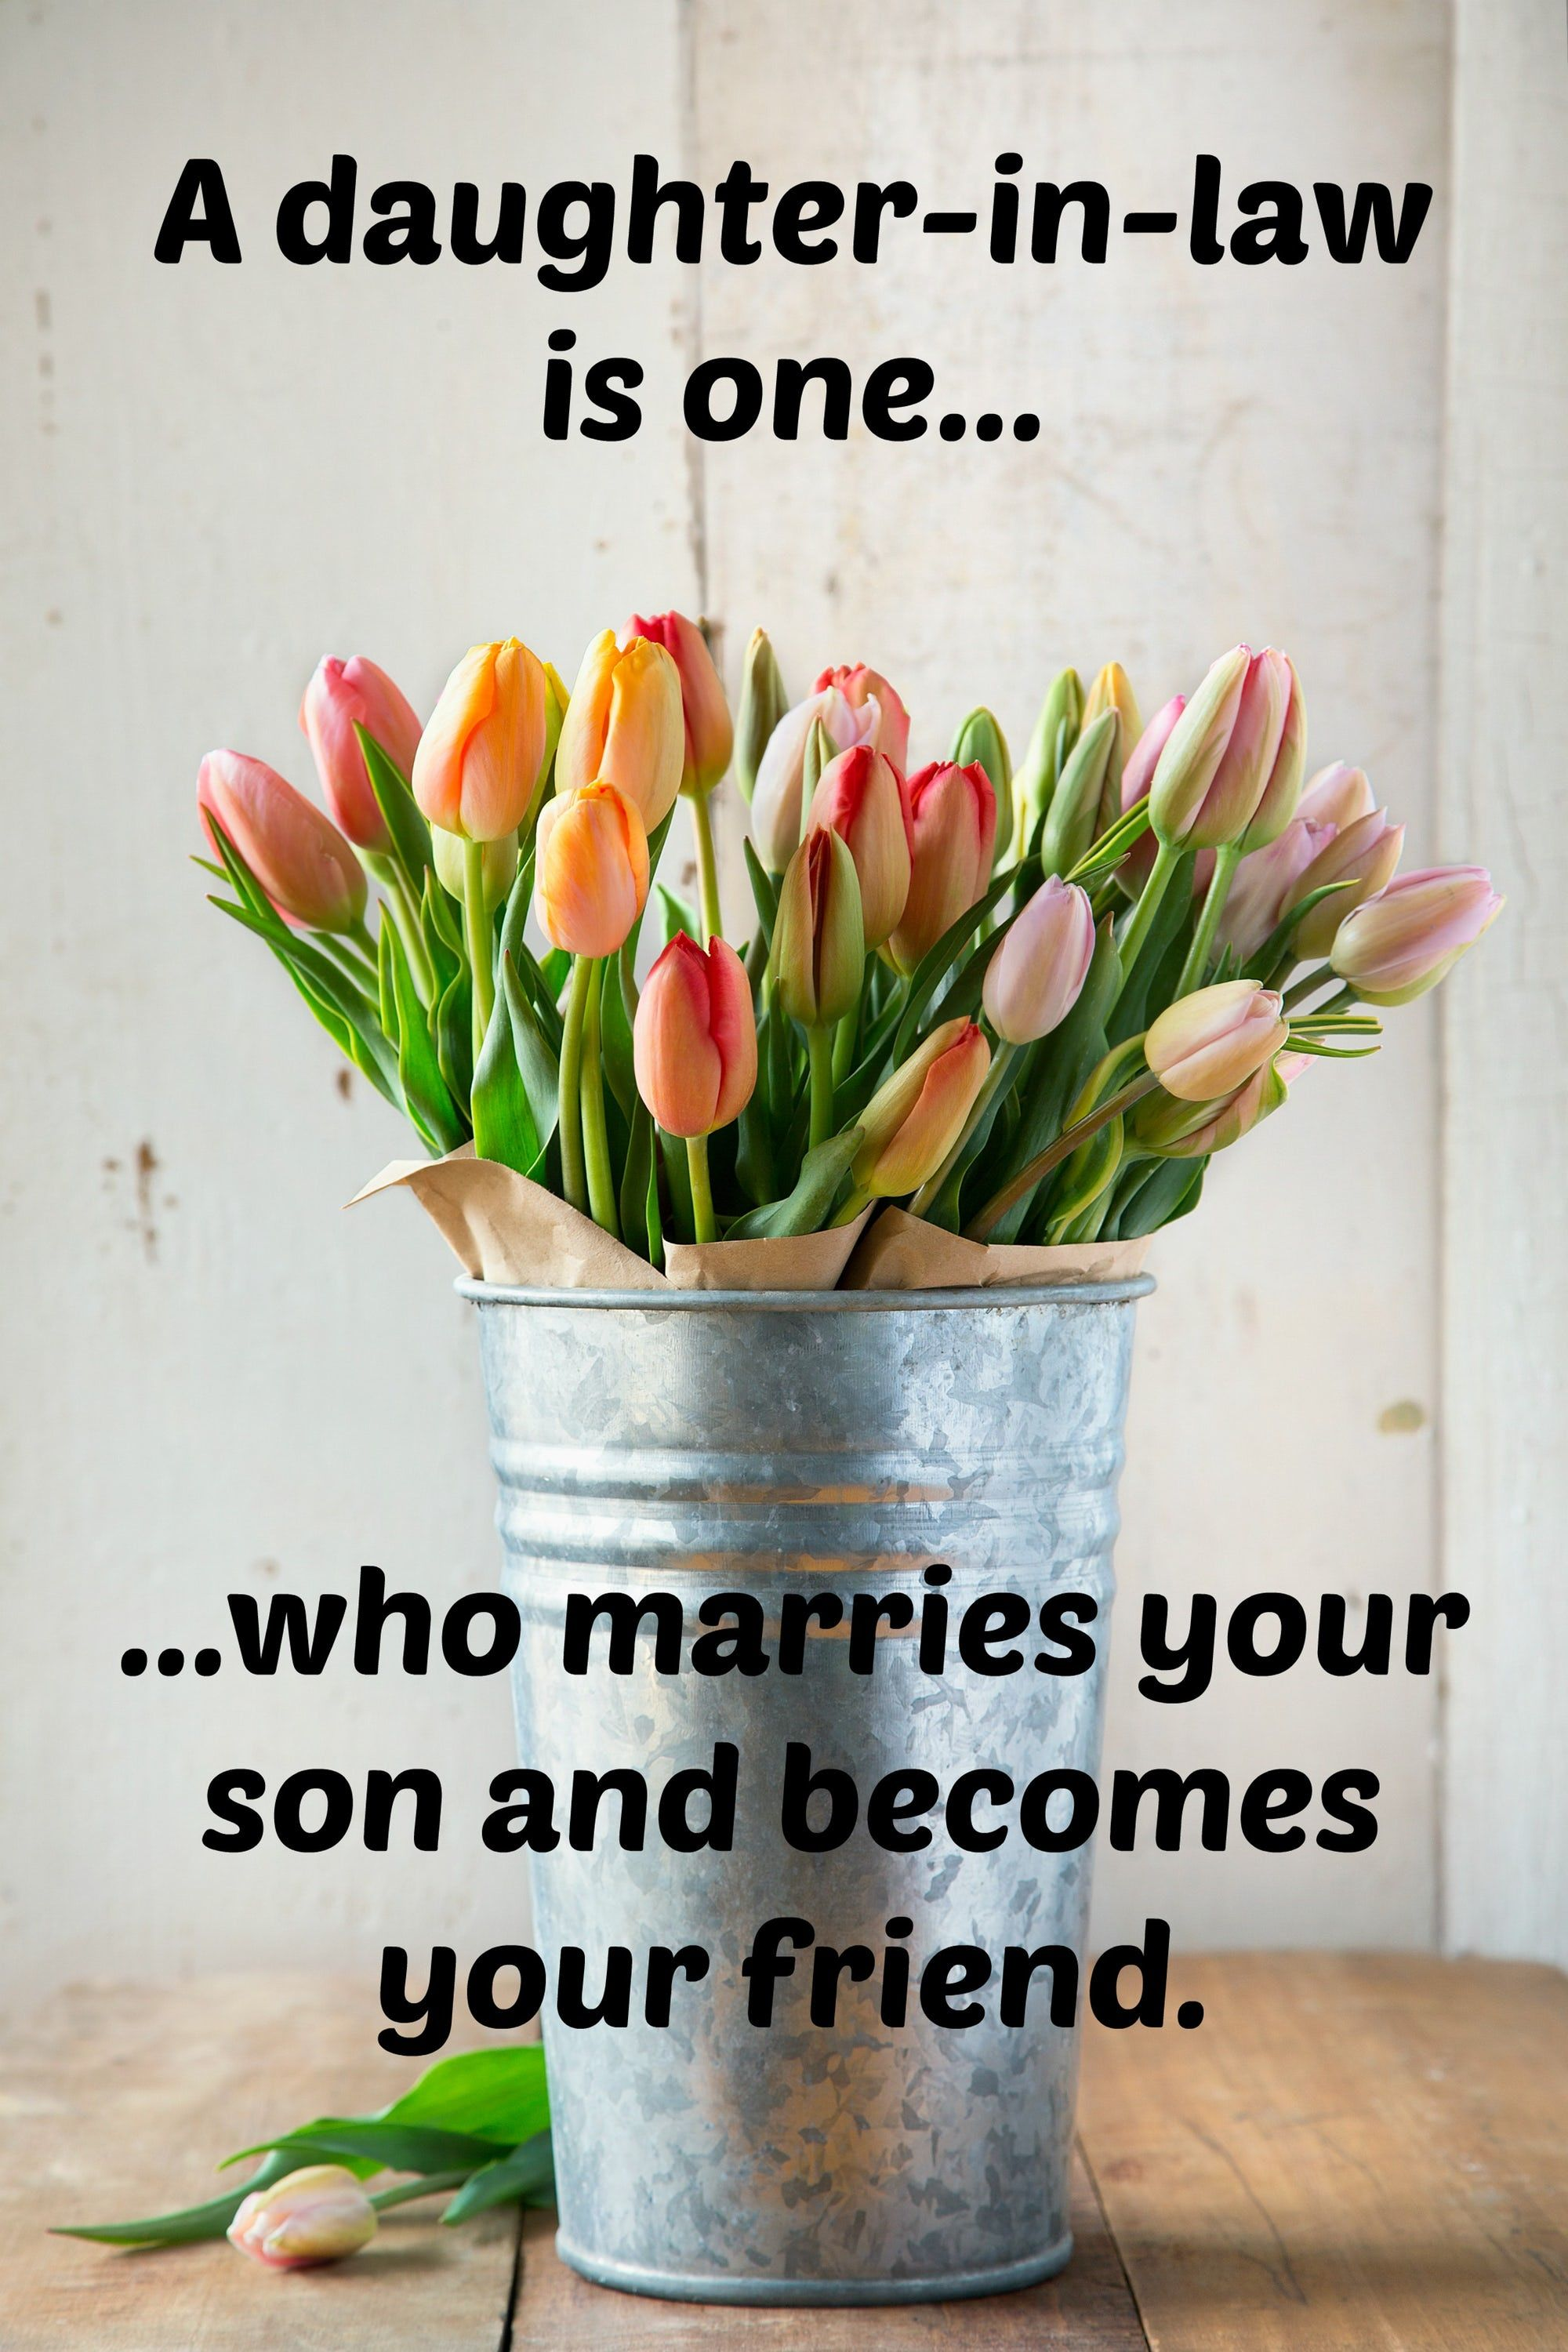 Future Son Funny Sayings Law